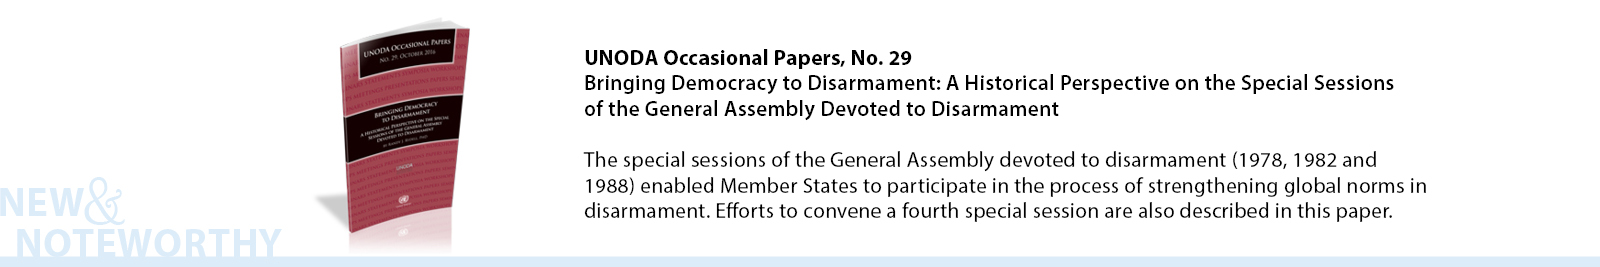 This paper provides historical background on the special sessions of the General Assembly devoted to disarmament (1978, 1982 and 1988) and discusses efforts to convene a fourth special session.